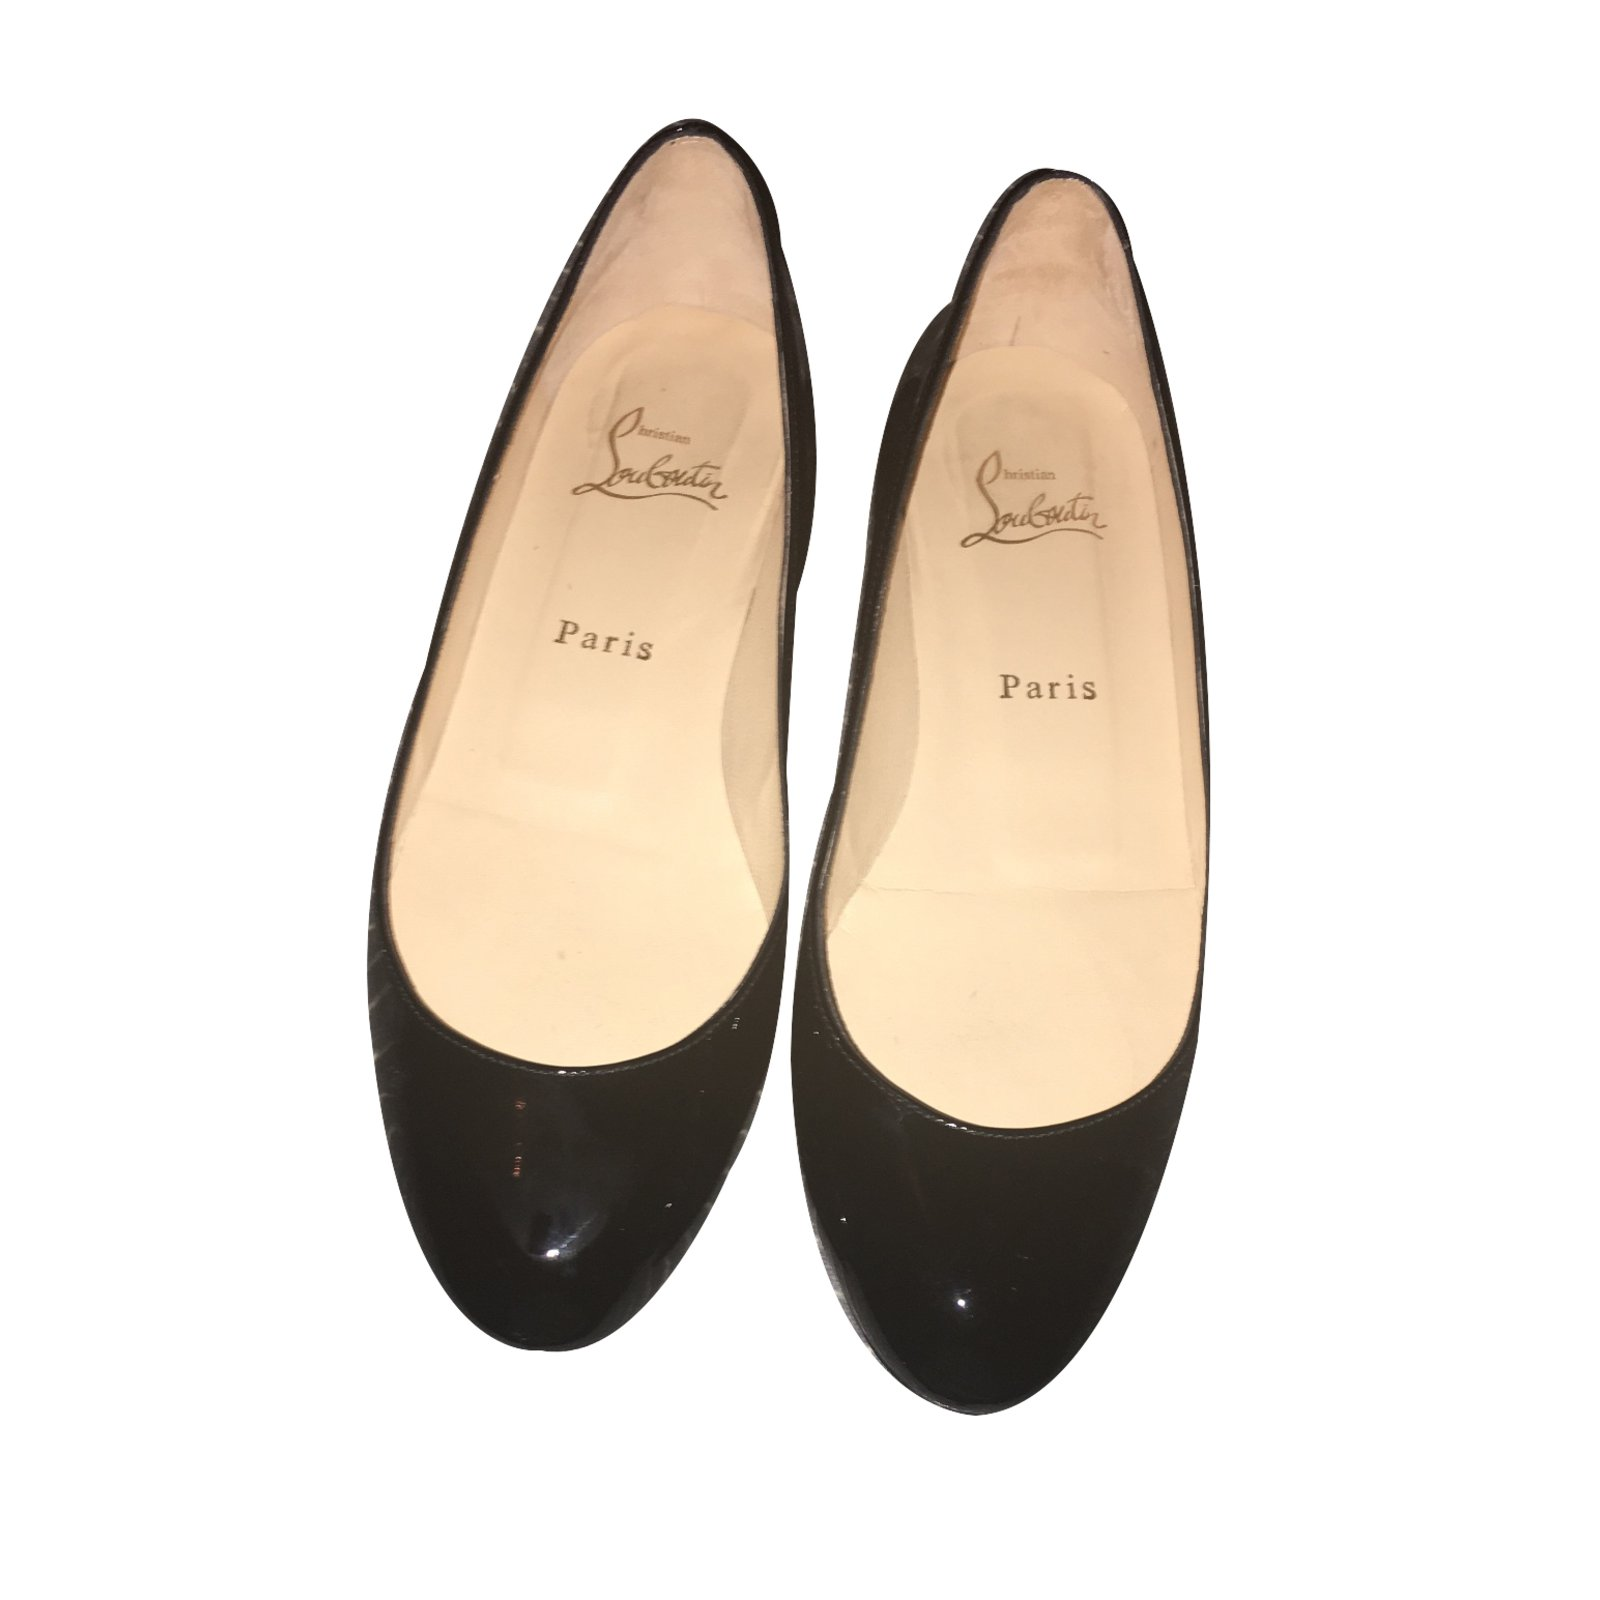 8df3a125be3f Christian Louboutin Fifi Ballet flats Patent leather Black ref.27076 ...